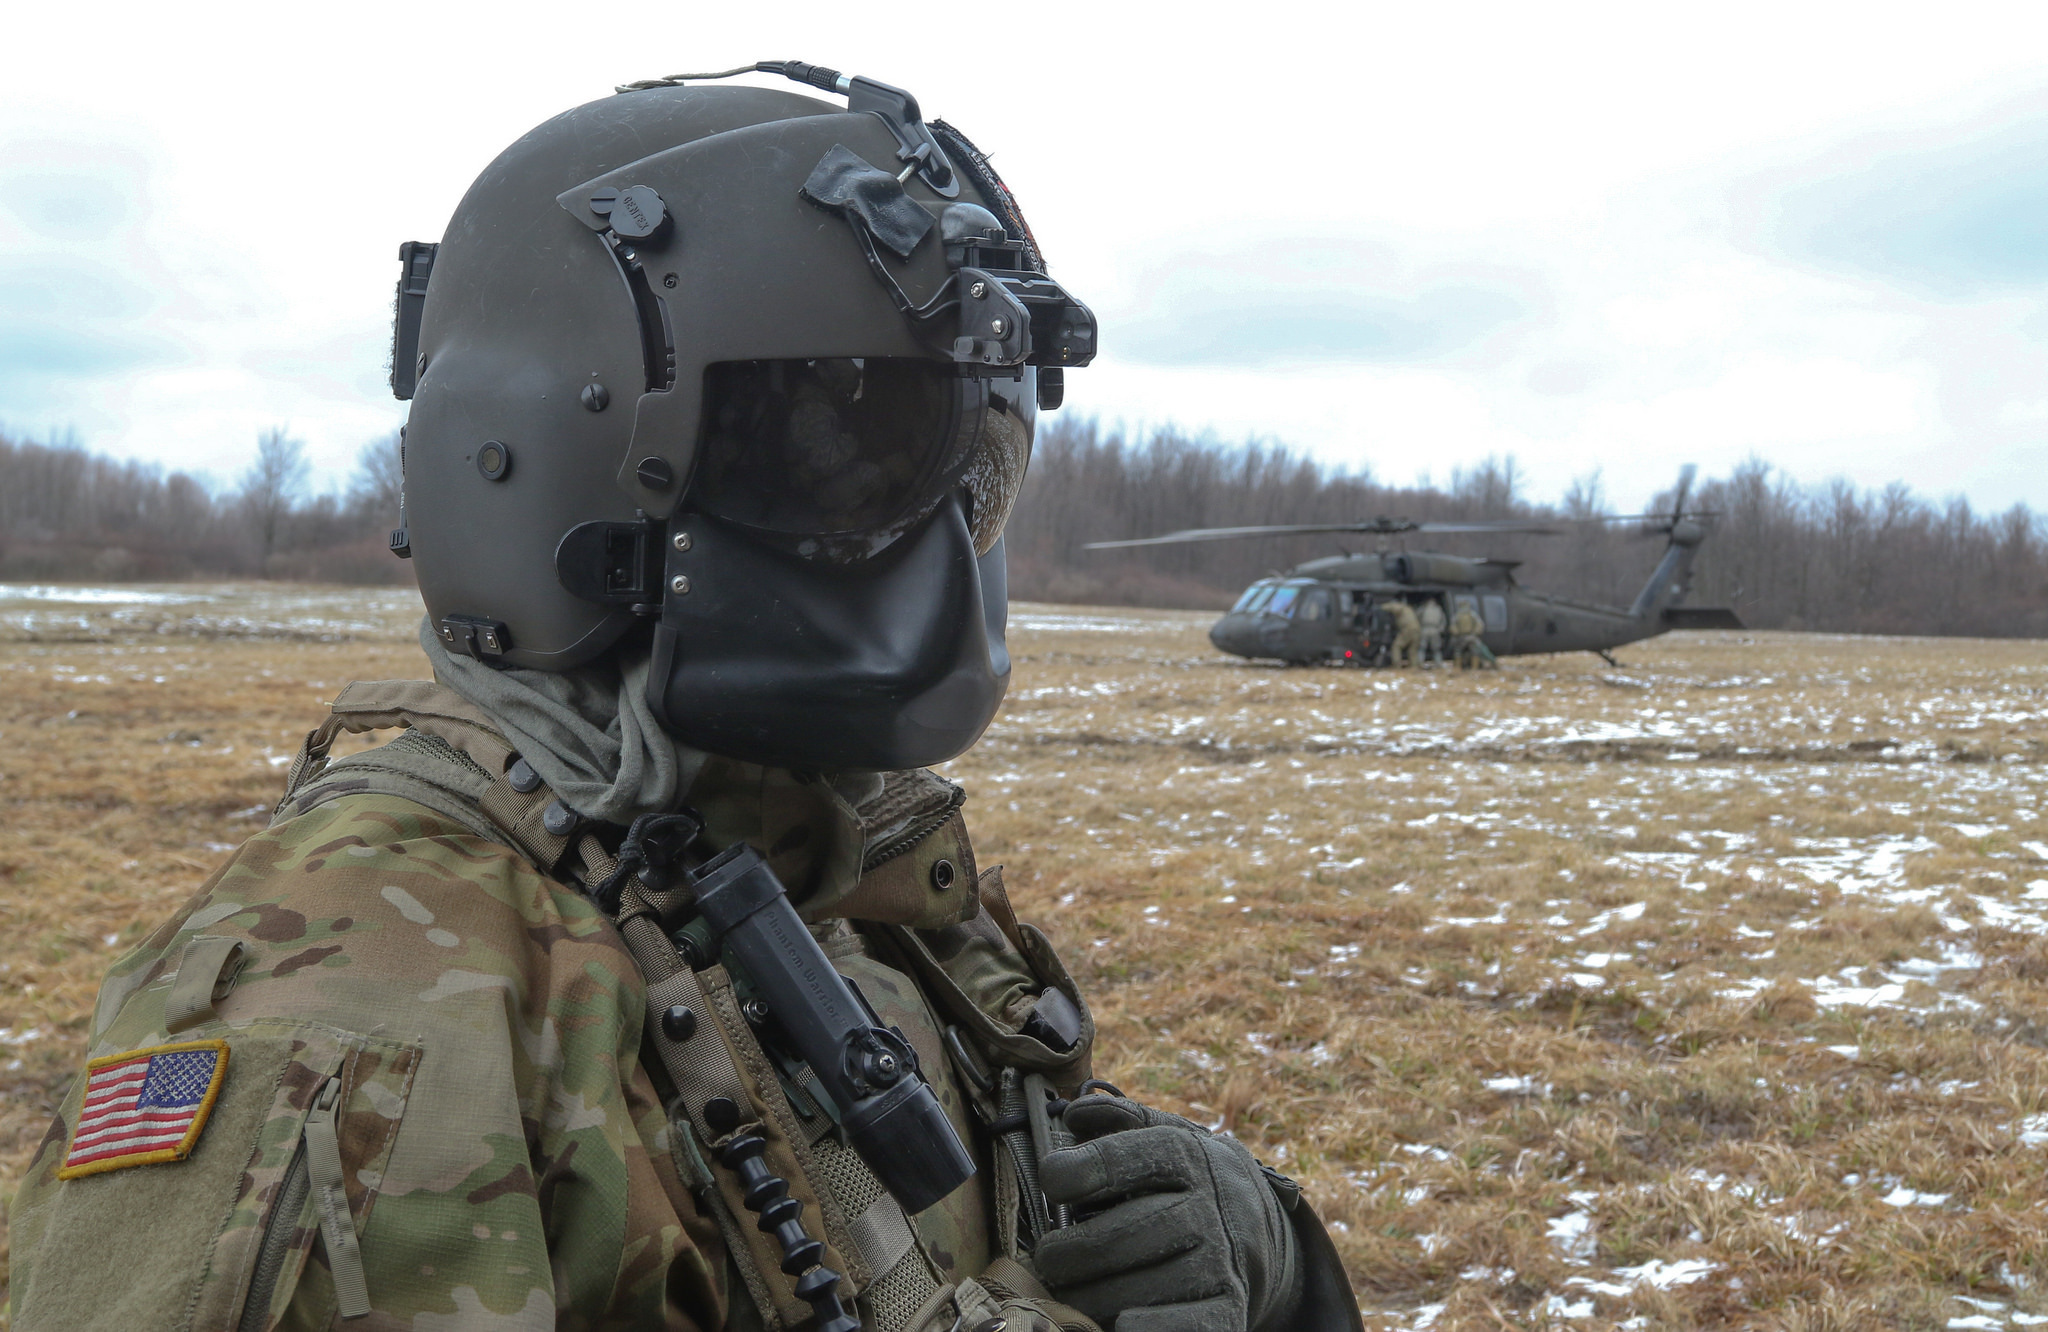 During training exercises near Ft. Drum, N.Y., pilots and crews flew about 50 feet above the ground to evade radar and minimize air defense threats.